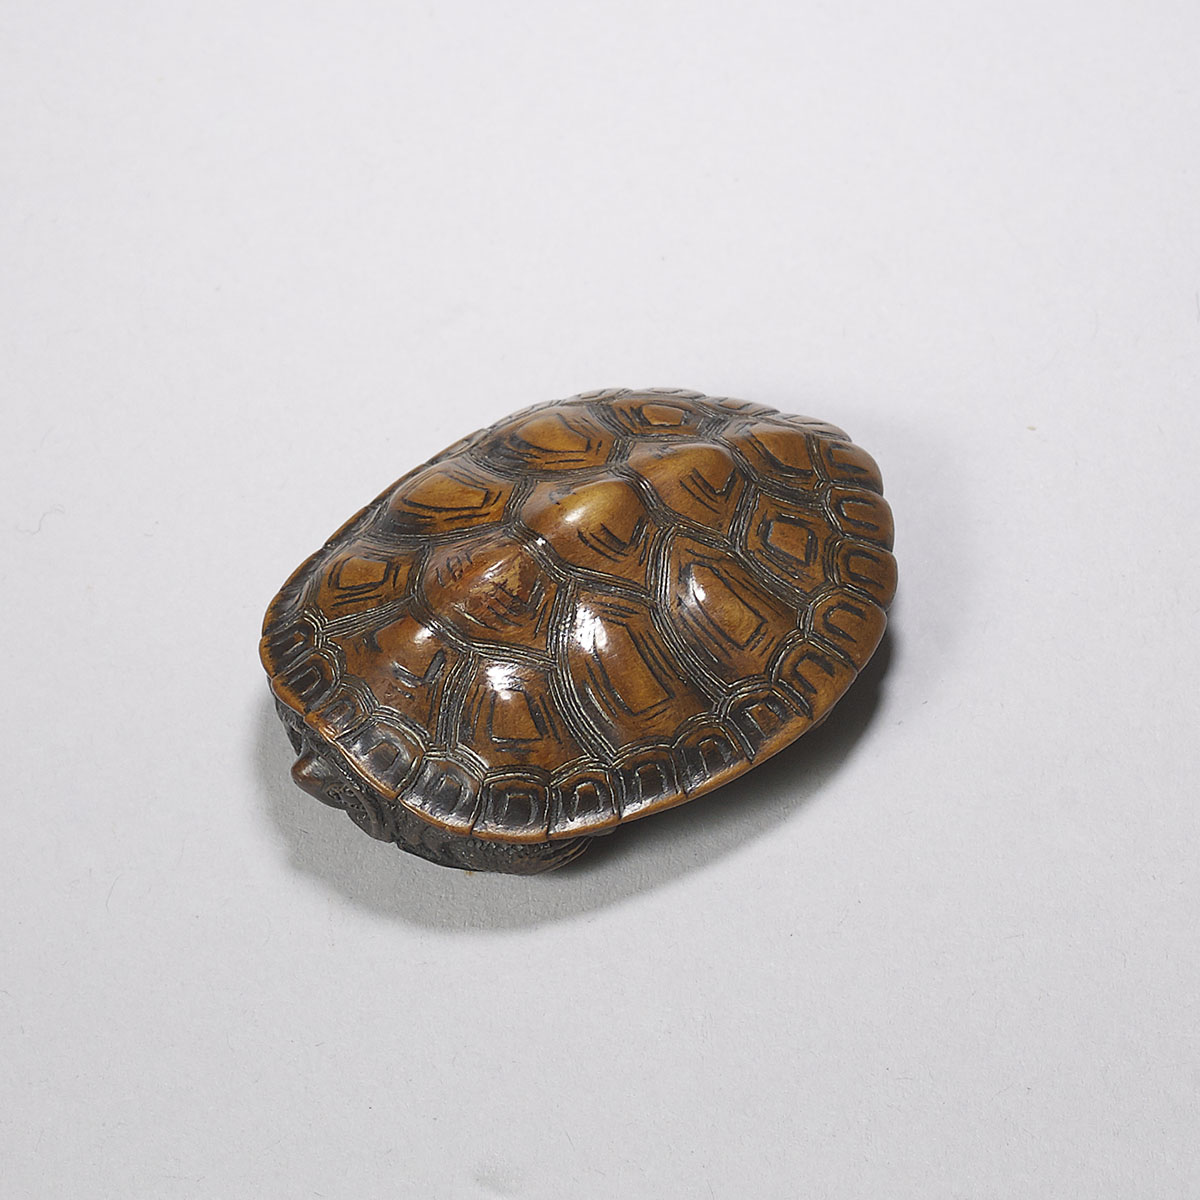 Tomokazu, wood netsuke of a turtle